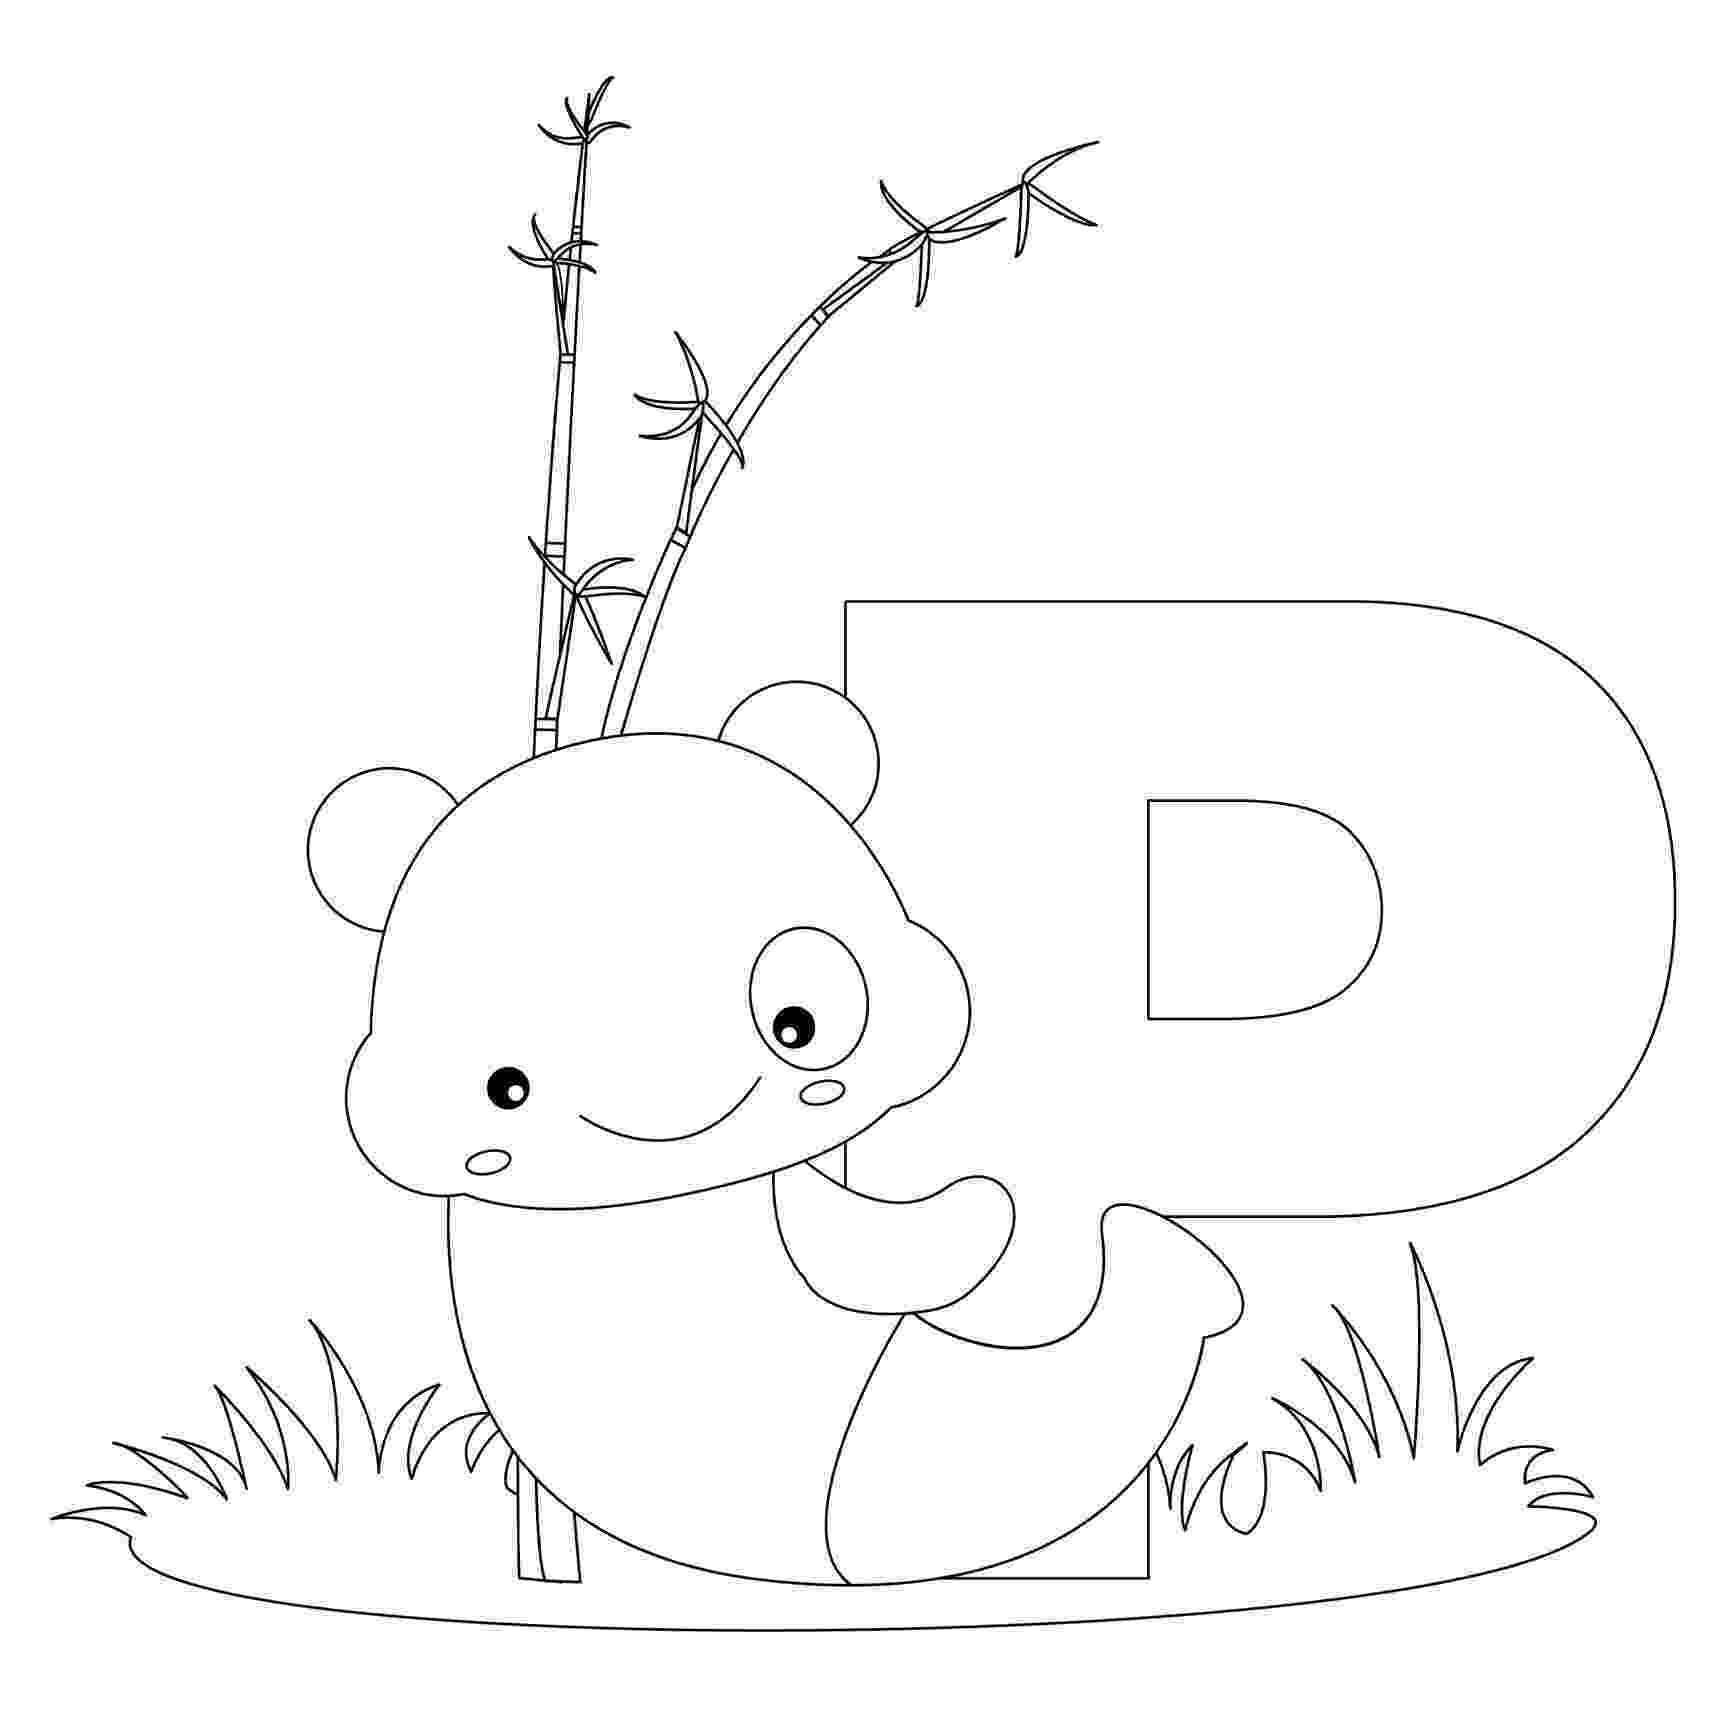 free alphabet coloring pages free printable alphabet coloring pages for kids best coloring alphabet pages free 1 1